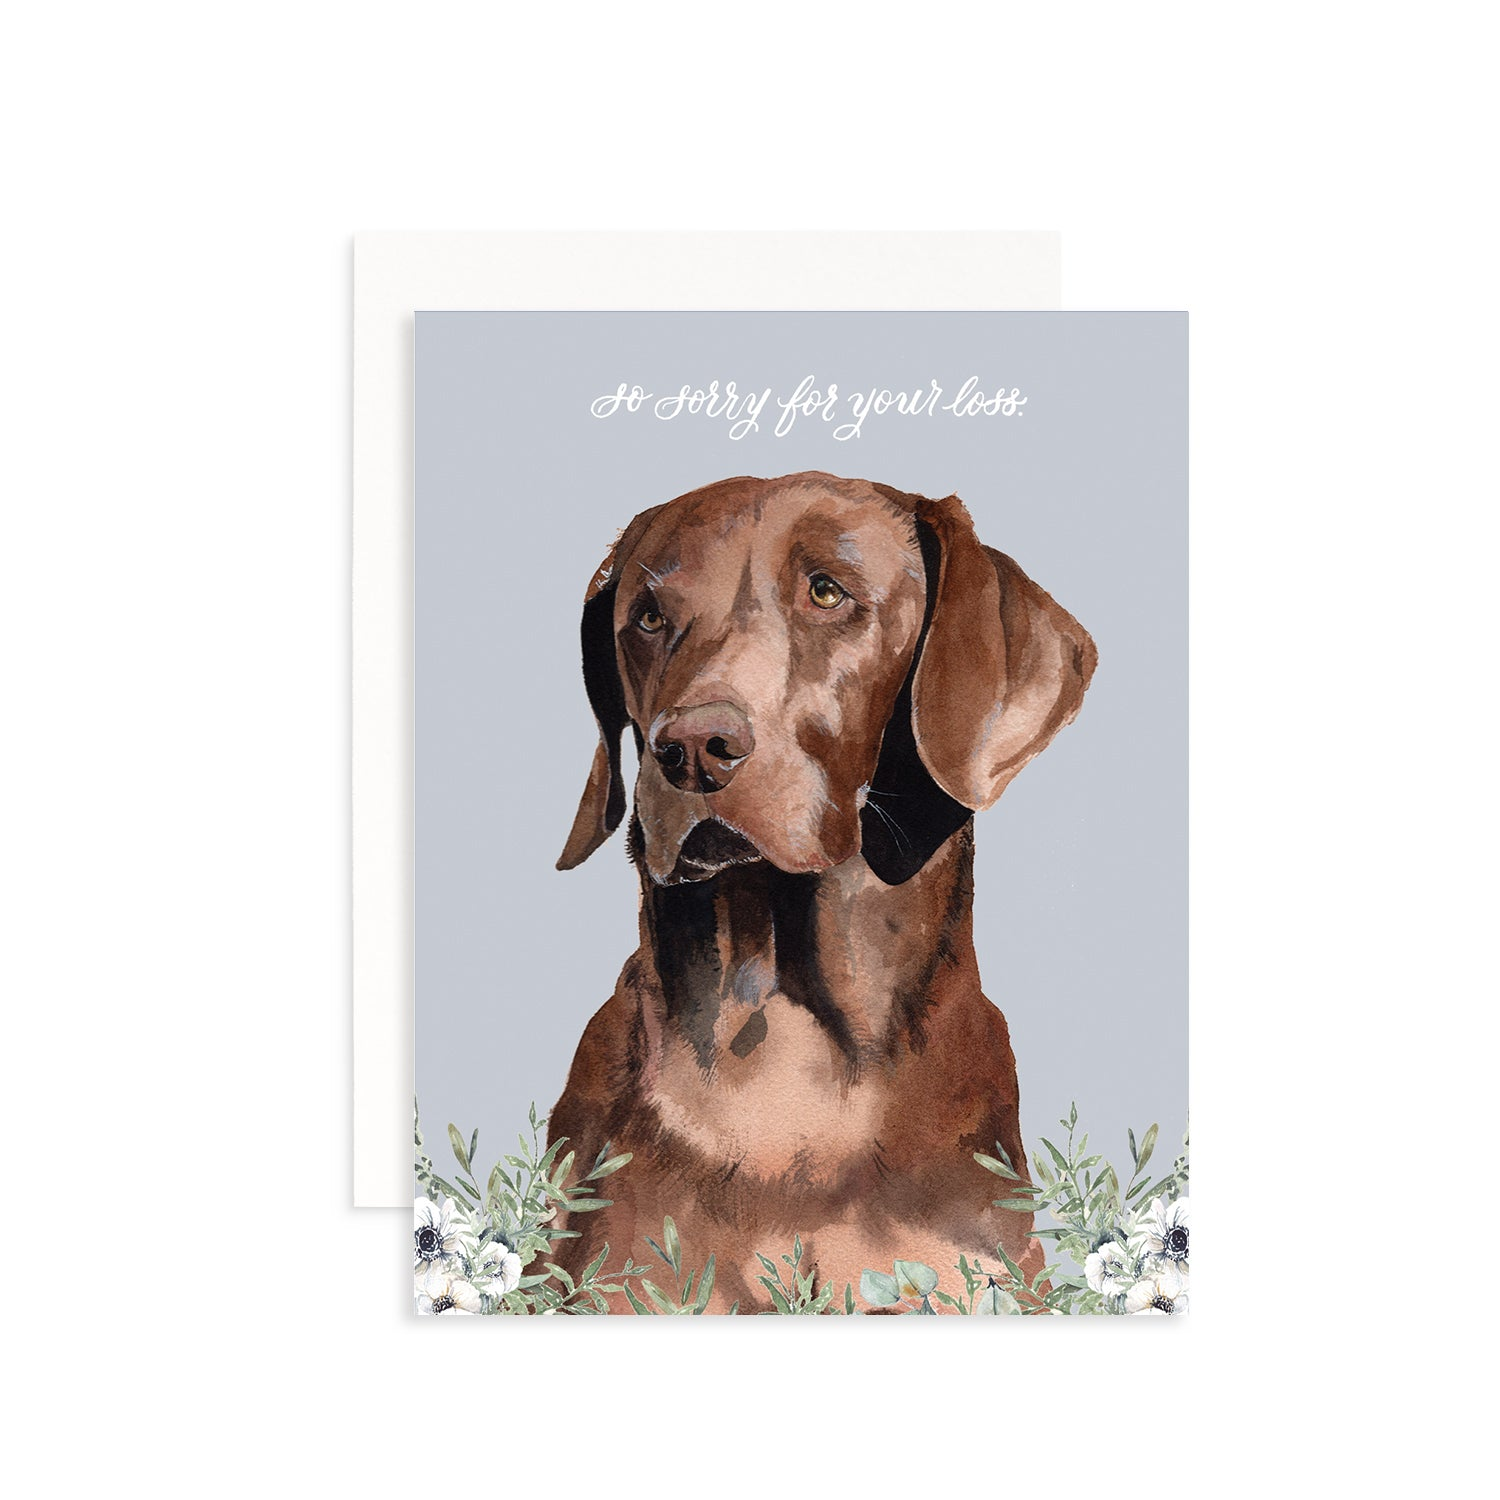 So Sorry for Your Loss (Dog) Greeting Card